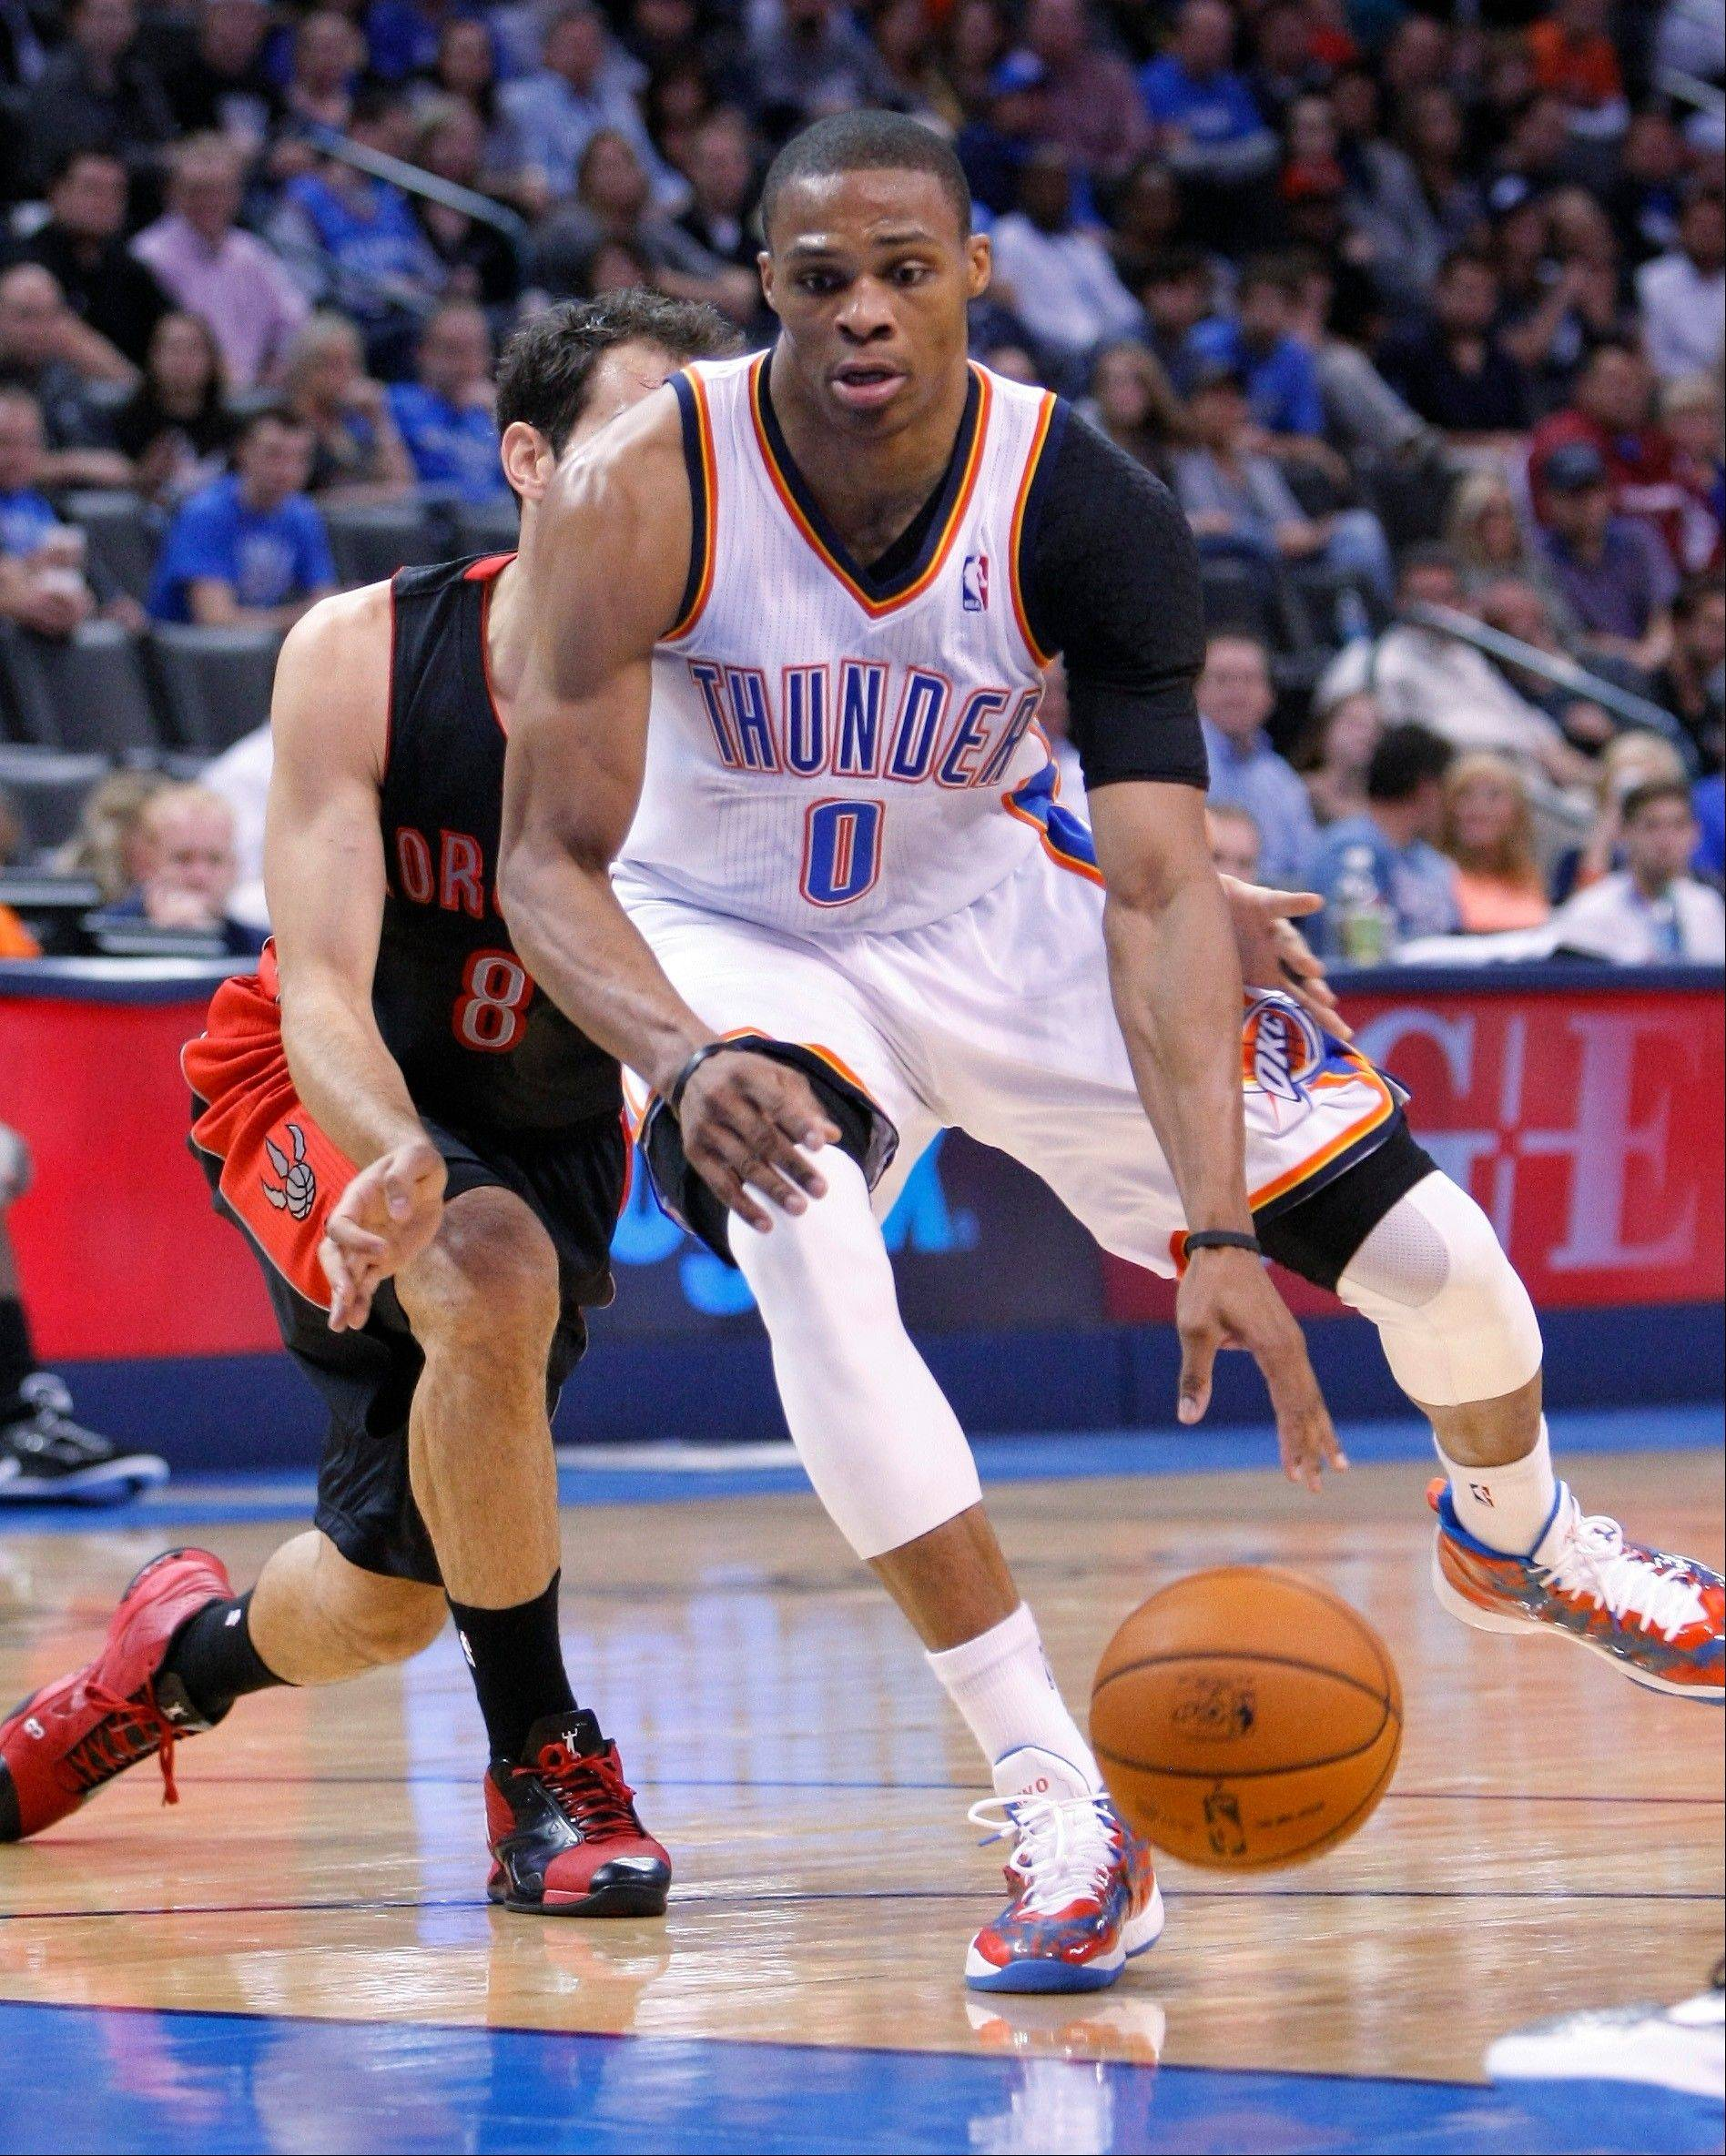 Thunder adjusting to life without Harden